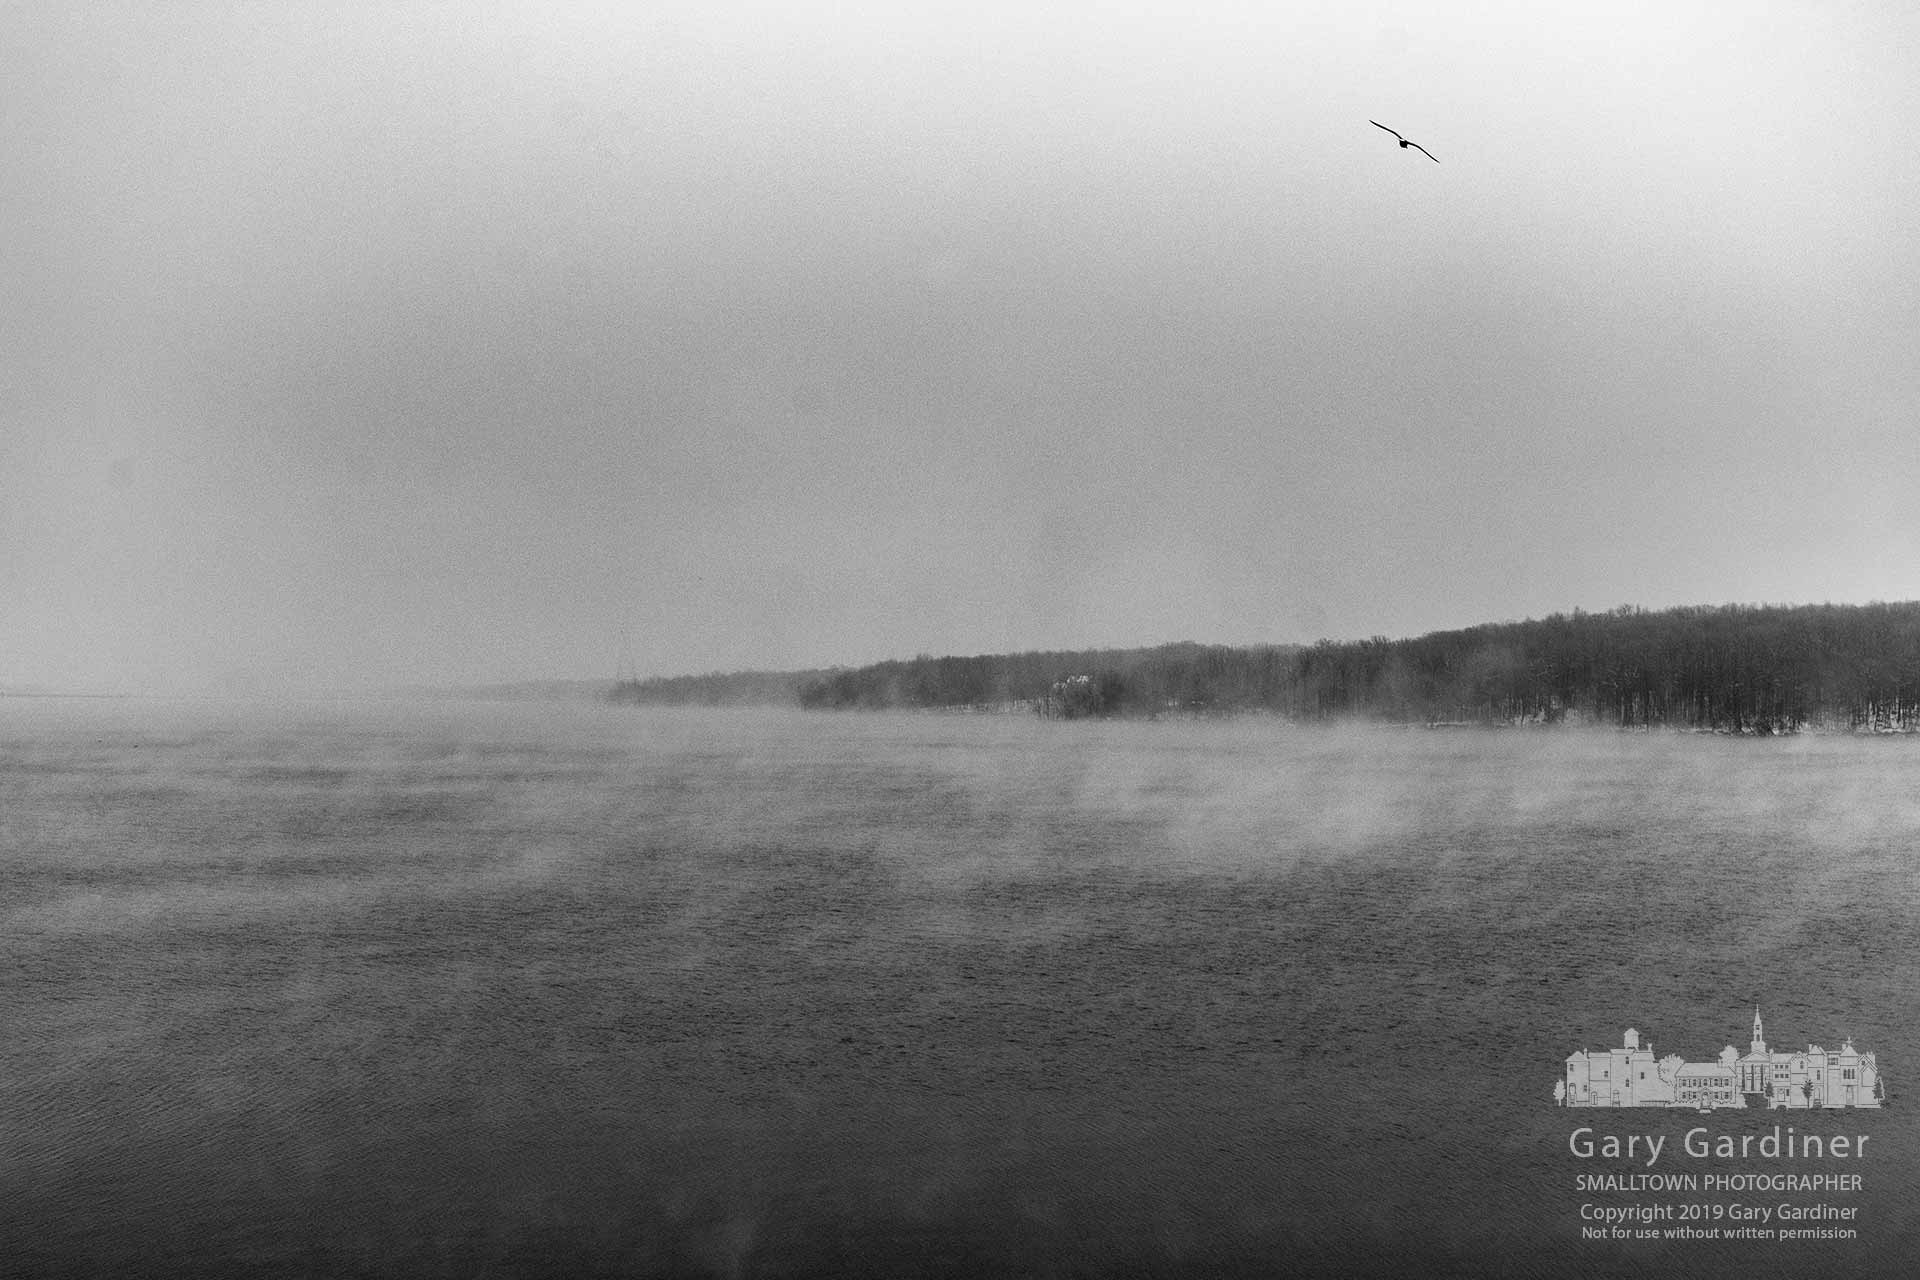 A seagull searches for a winter meal flying over the waters of Hoover Reservoir on a below-freezing morning that saw the lake covered in a light layer of fog. My Final Photo for Jan. 15, 2019.